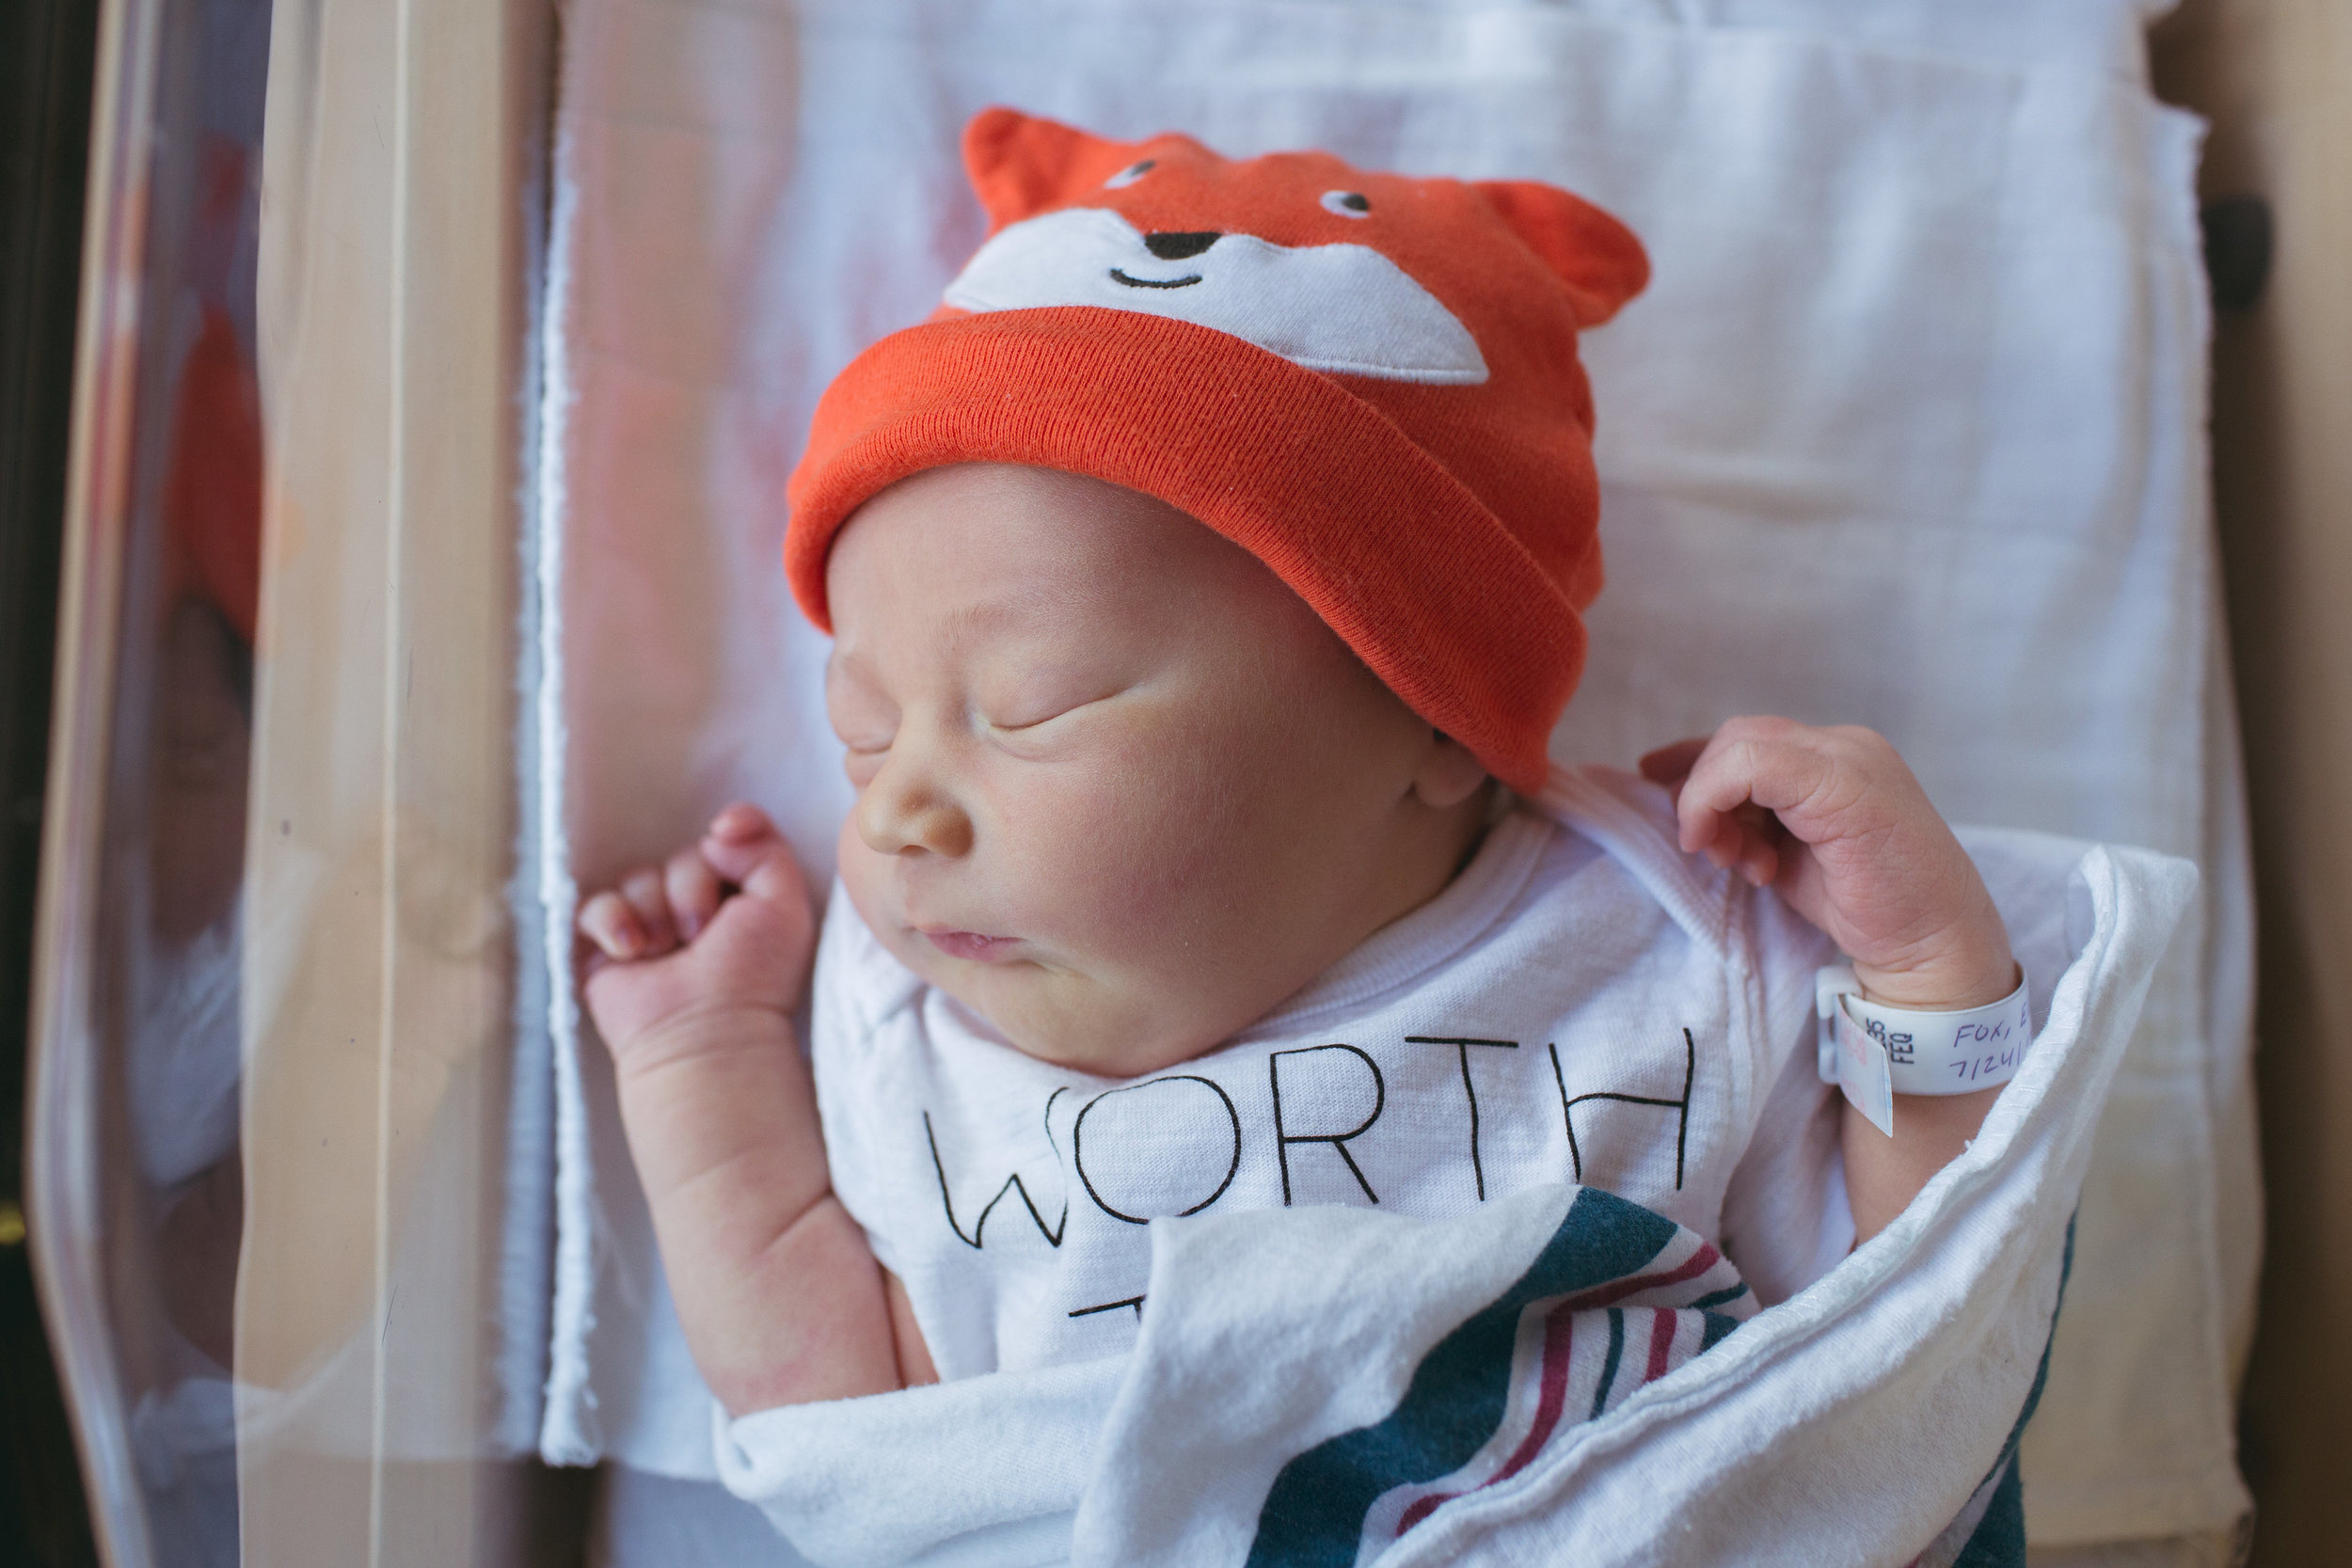 Baby Benjamin Fox sports a hat that represents his last name well!